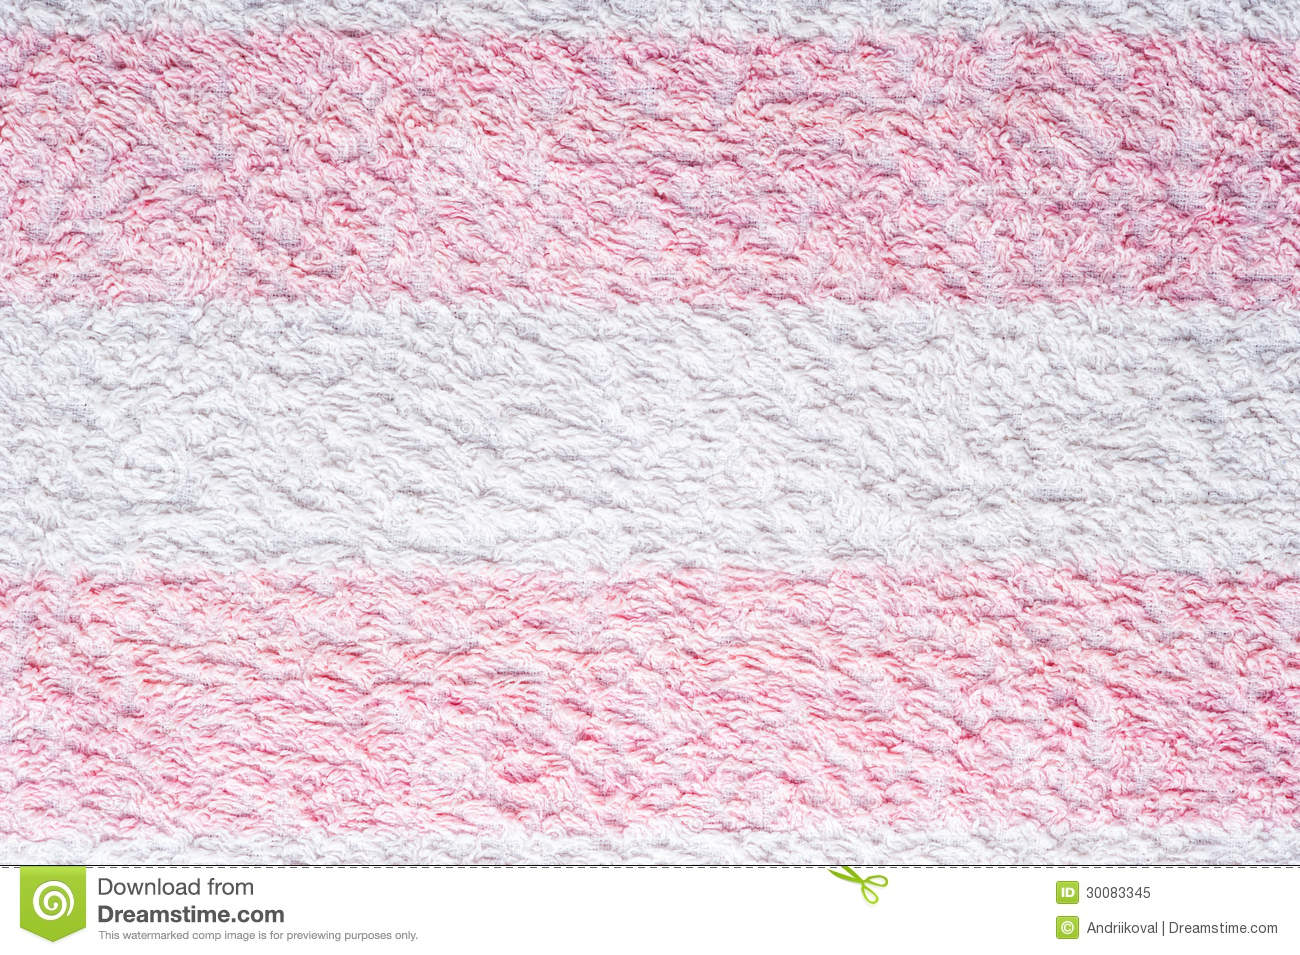 Towel Texture Royalty Free Stock Photo - Image: 30083345